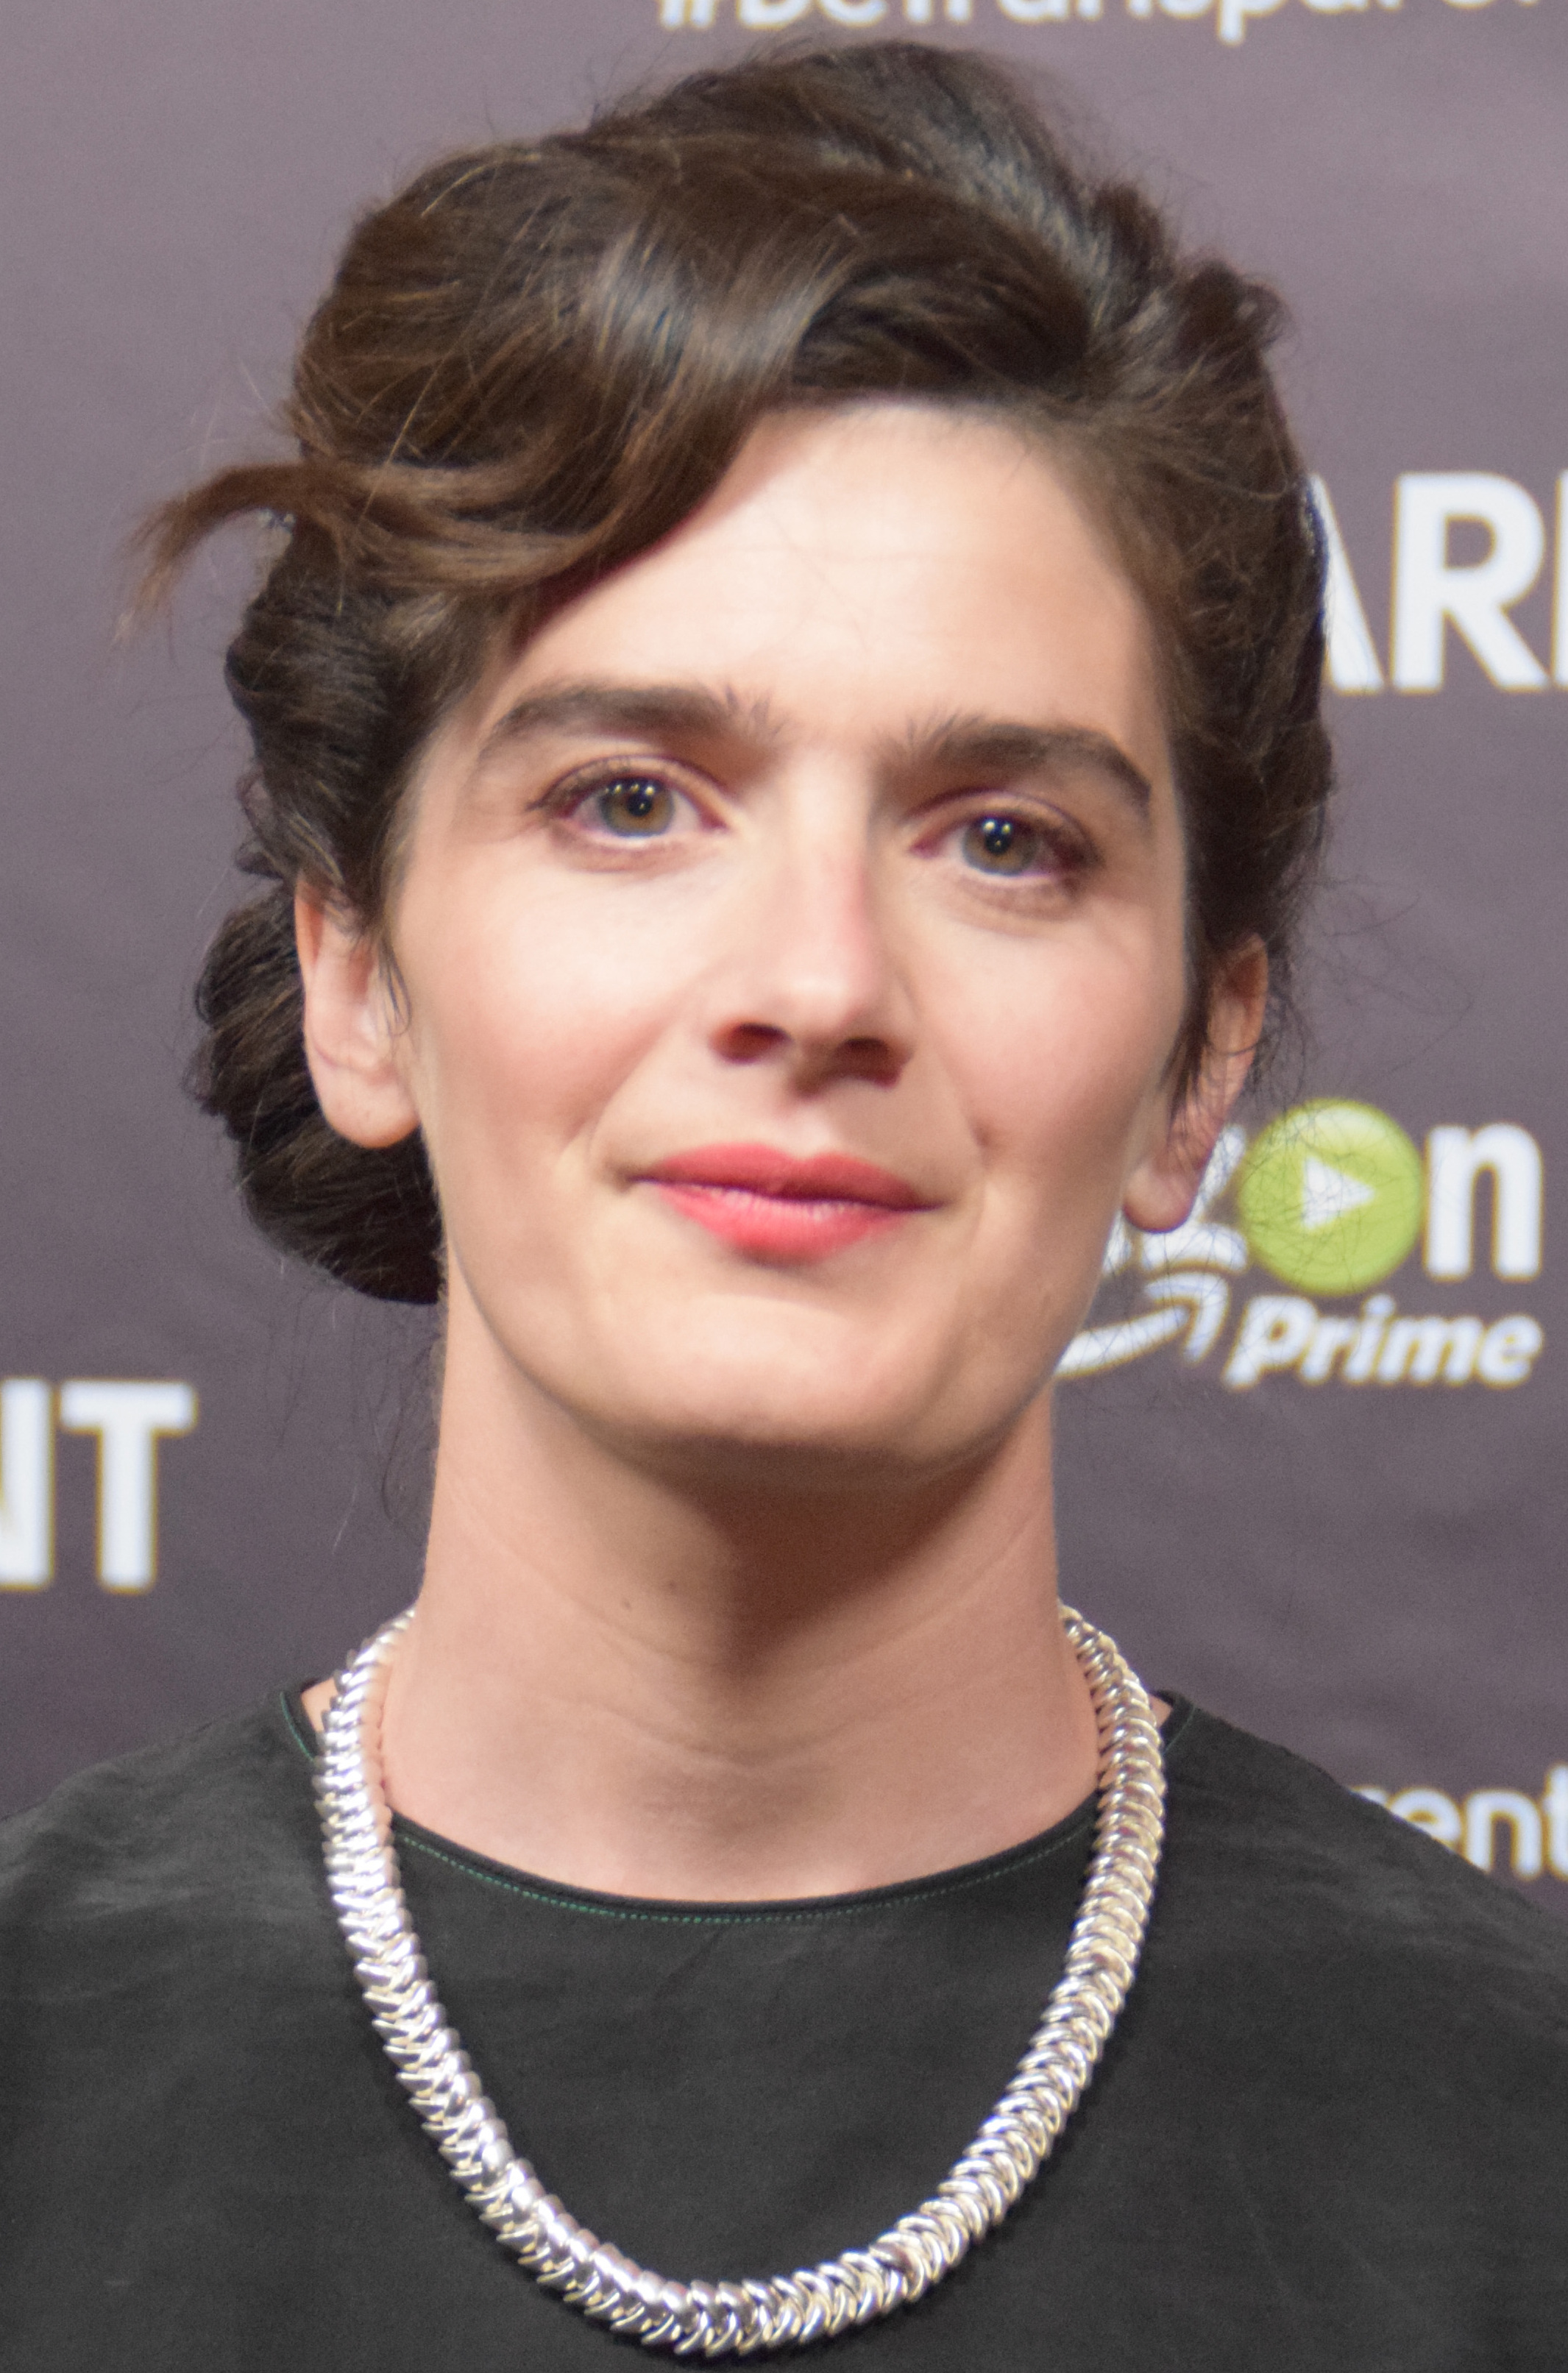 The 36-year old daughter of father Anthony Herrera and mother Viva Gaby Hoffmann in 2018 photo. Gaby Hoffmann earned a  million dollar salary - leaving the net worth at 0.5 million in 2018